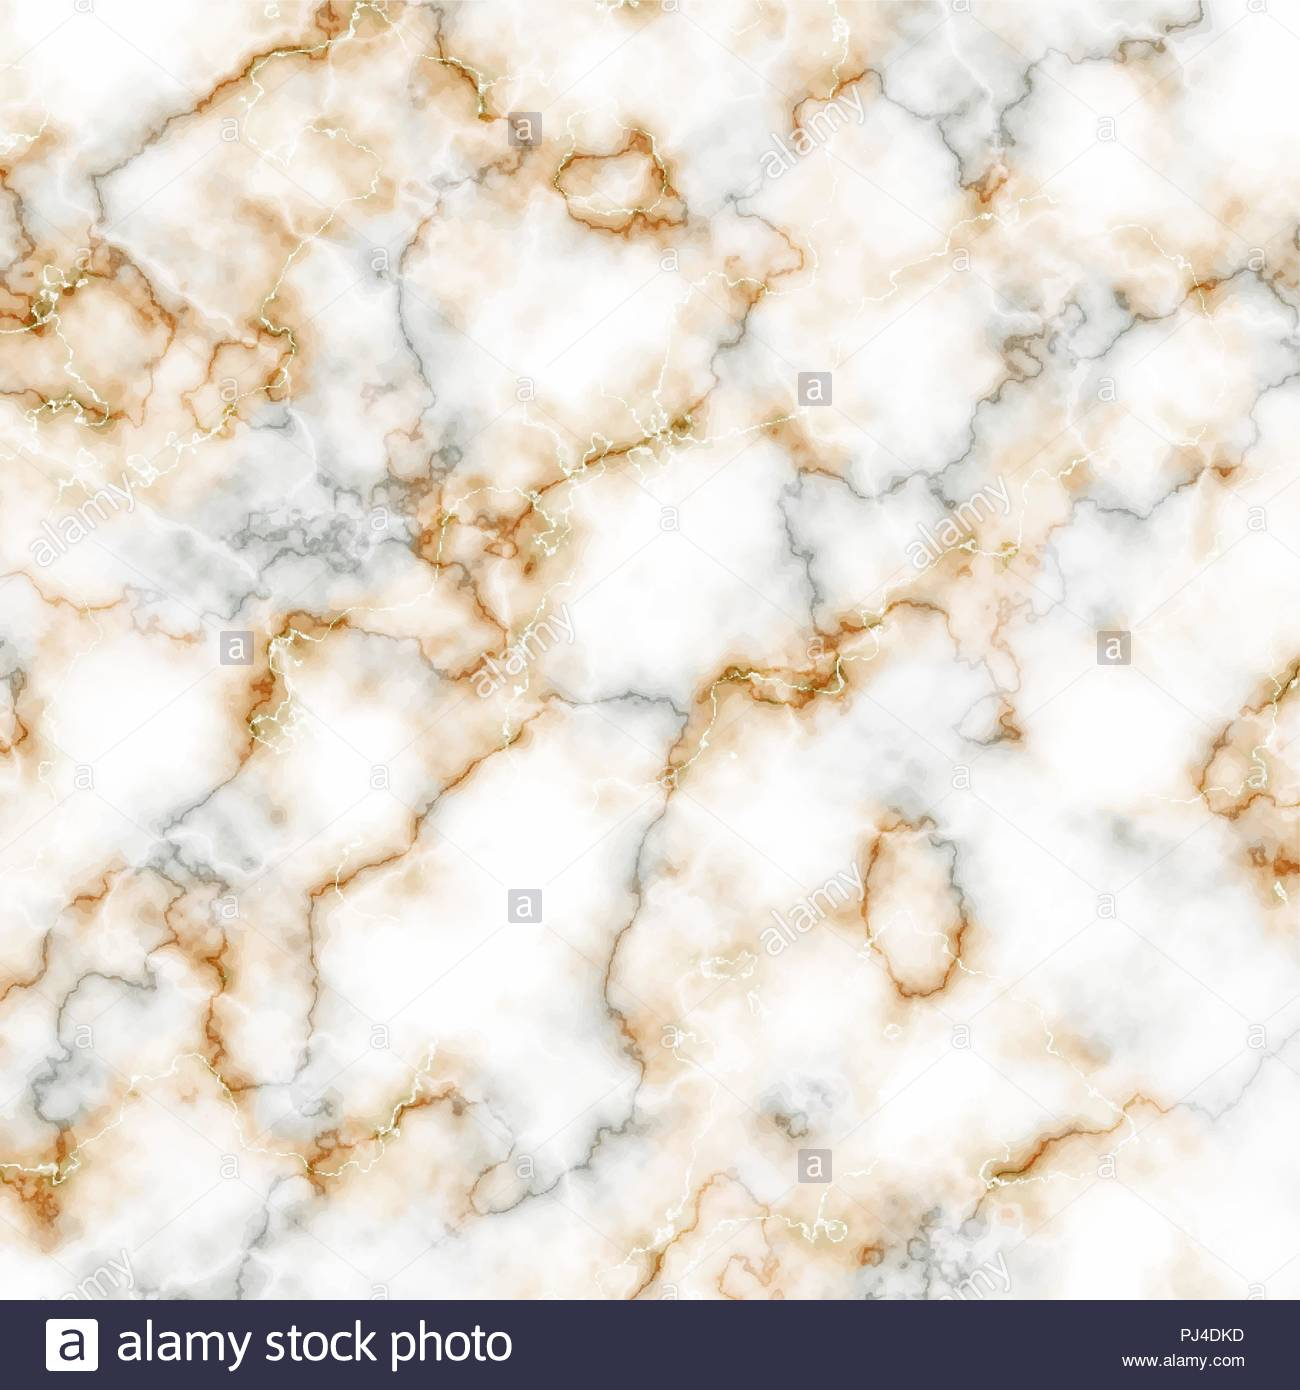 White, gray and golden marble texture. Vector background - Stock Vector